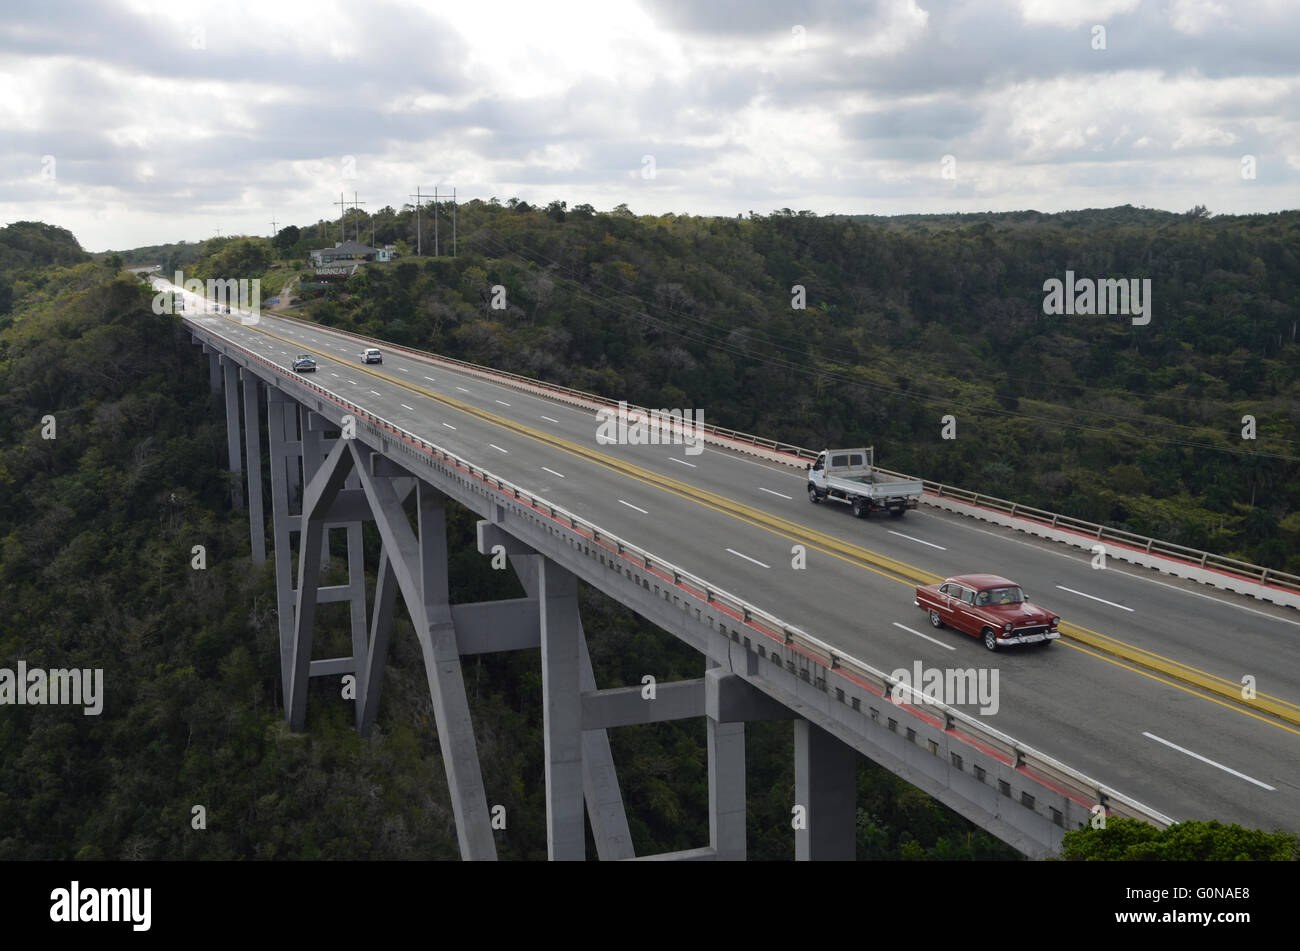 Viaduct of Bacunayagua near Matanzas, Cuba 2016 - Stock Image